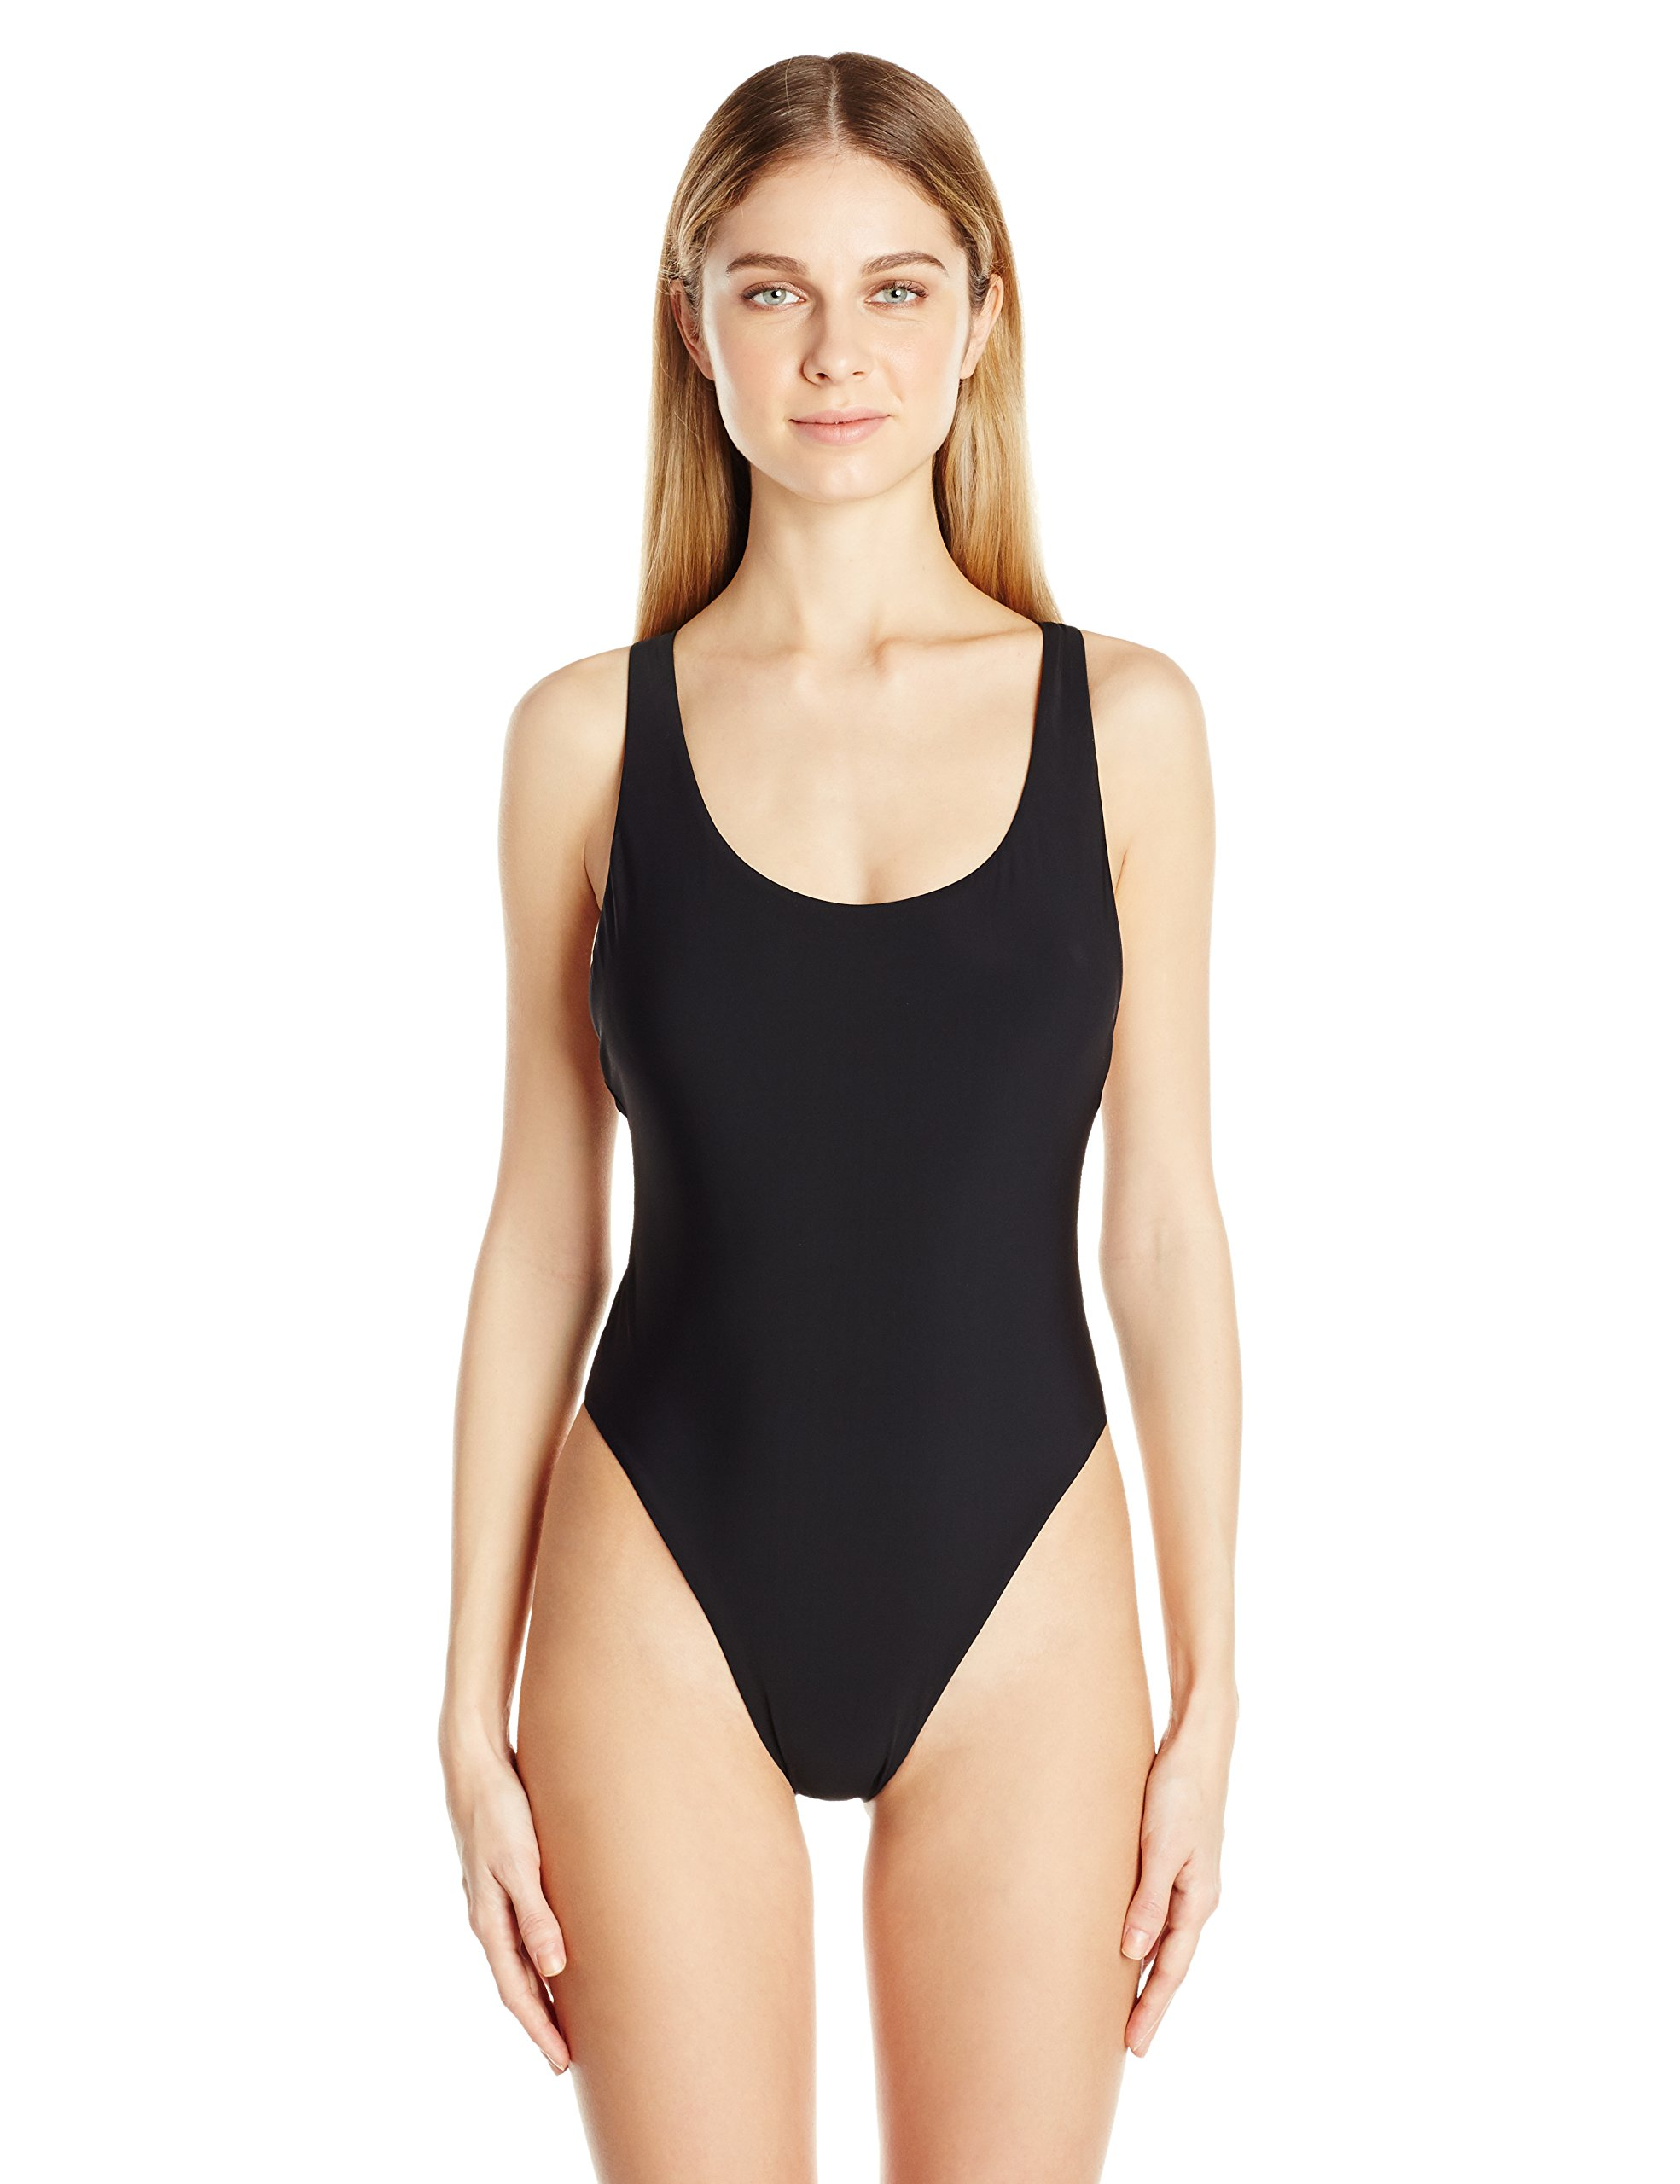 Red Carter Women's Splice and Dice 80's Style High Hip One Piece Swimsuit, Black, L